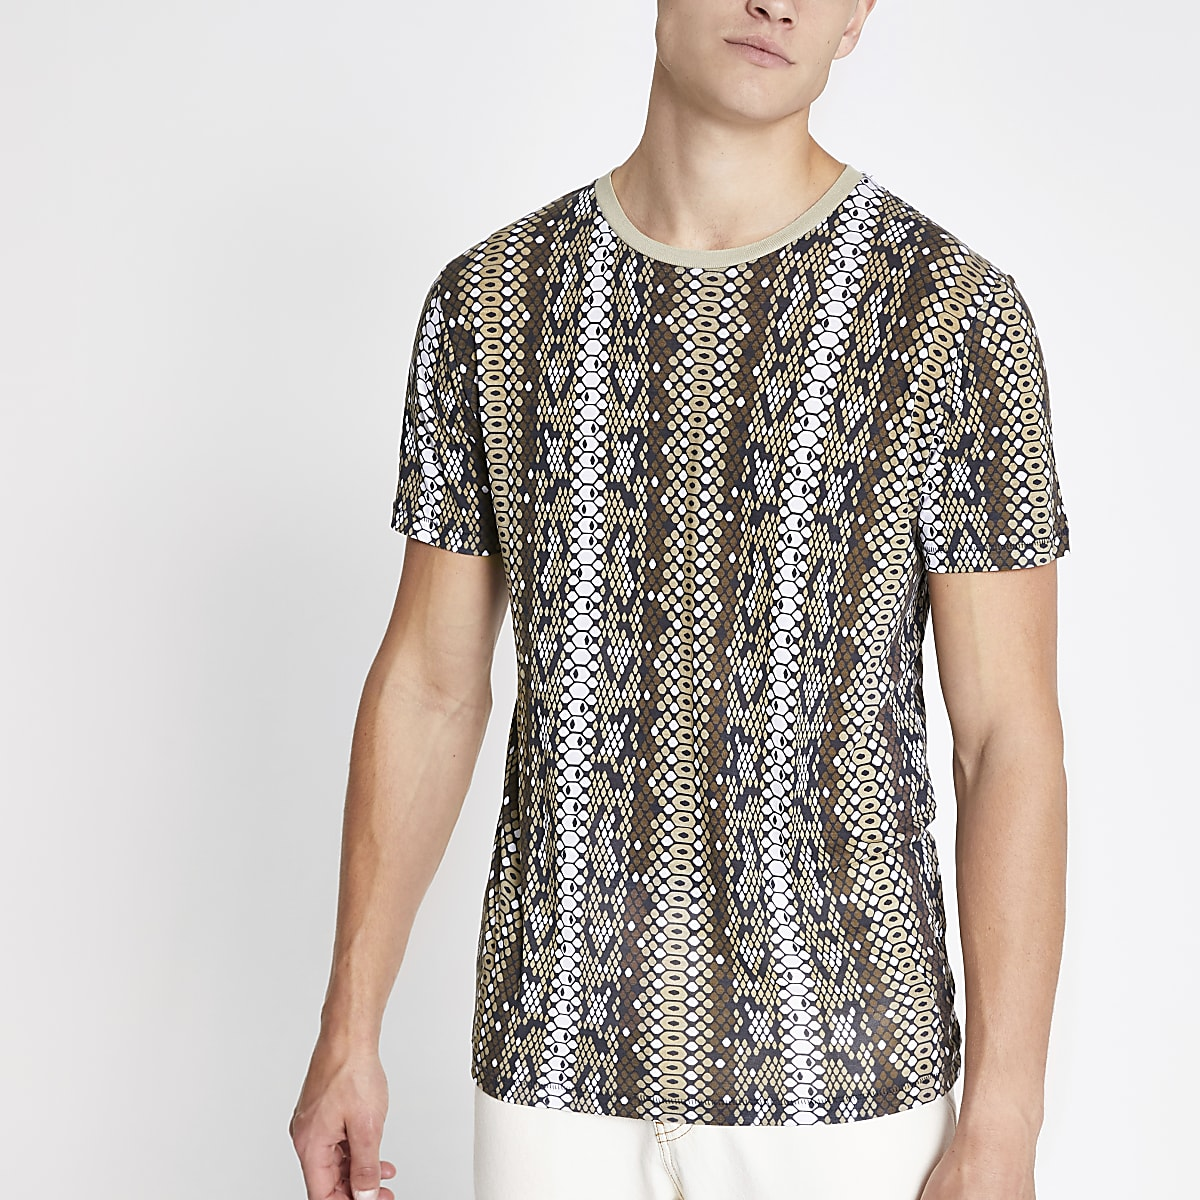 Jack and Jones brown printed T-shirt